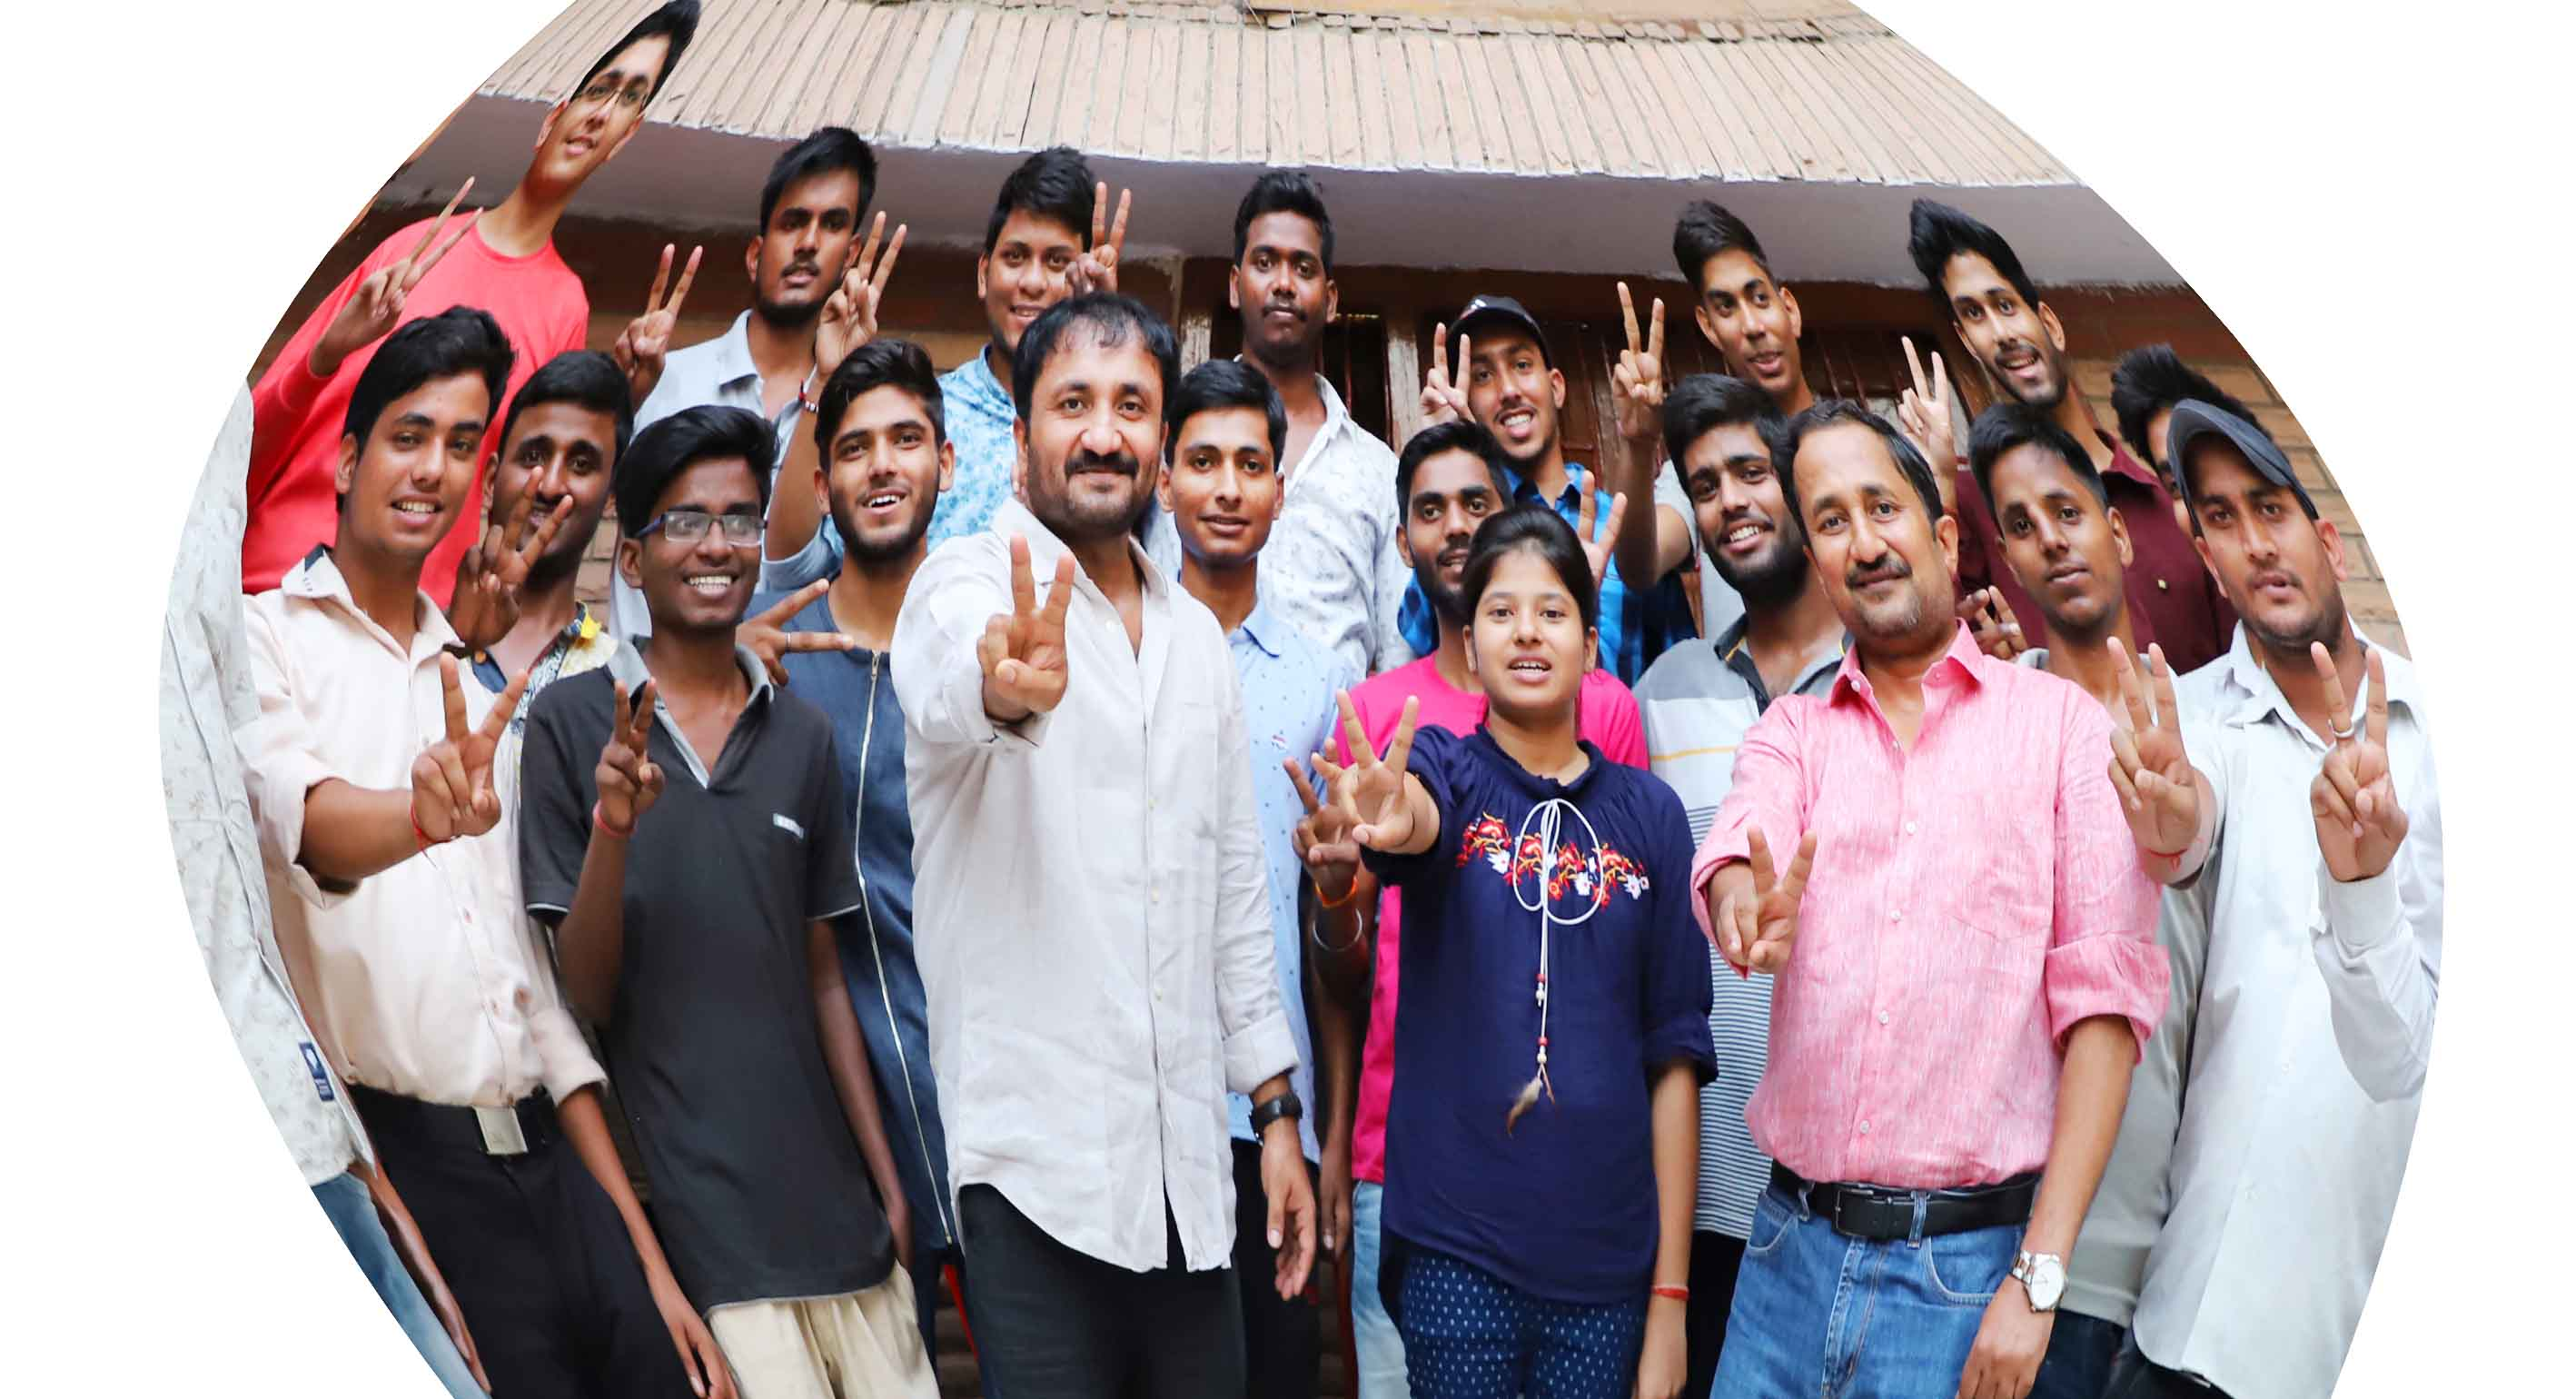 Anand super 30 – 18 of its 30 students have made it to JEE-Advance